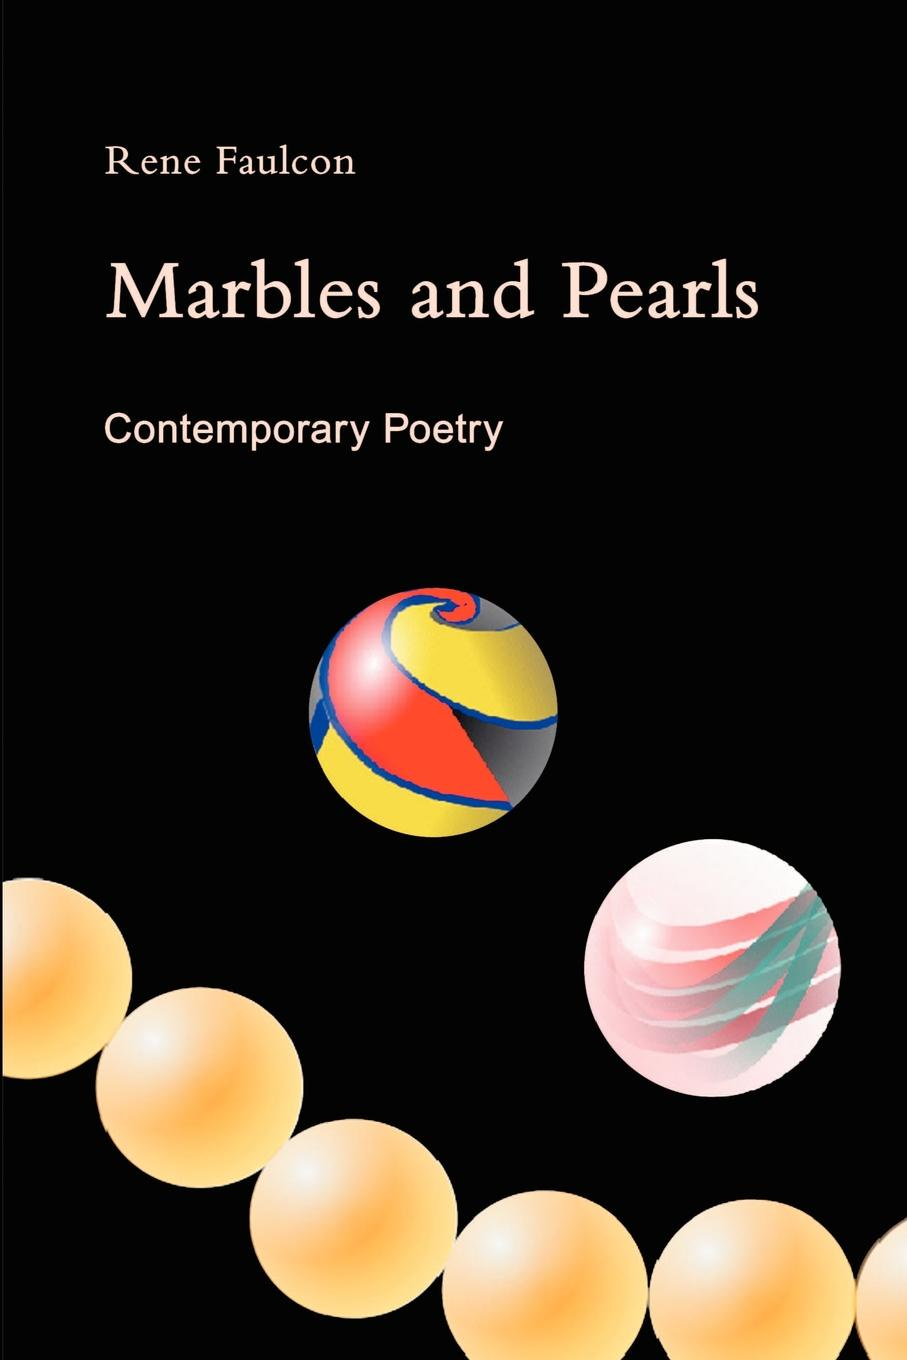 Rene Faulcon Marbles and Pearls. Contemporary Poetry